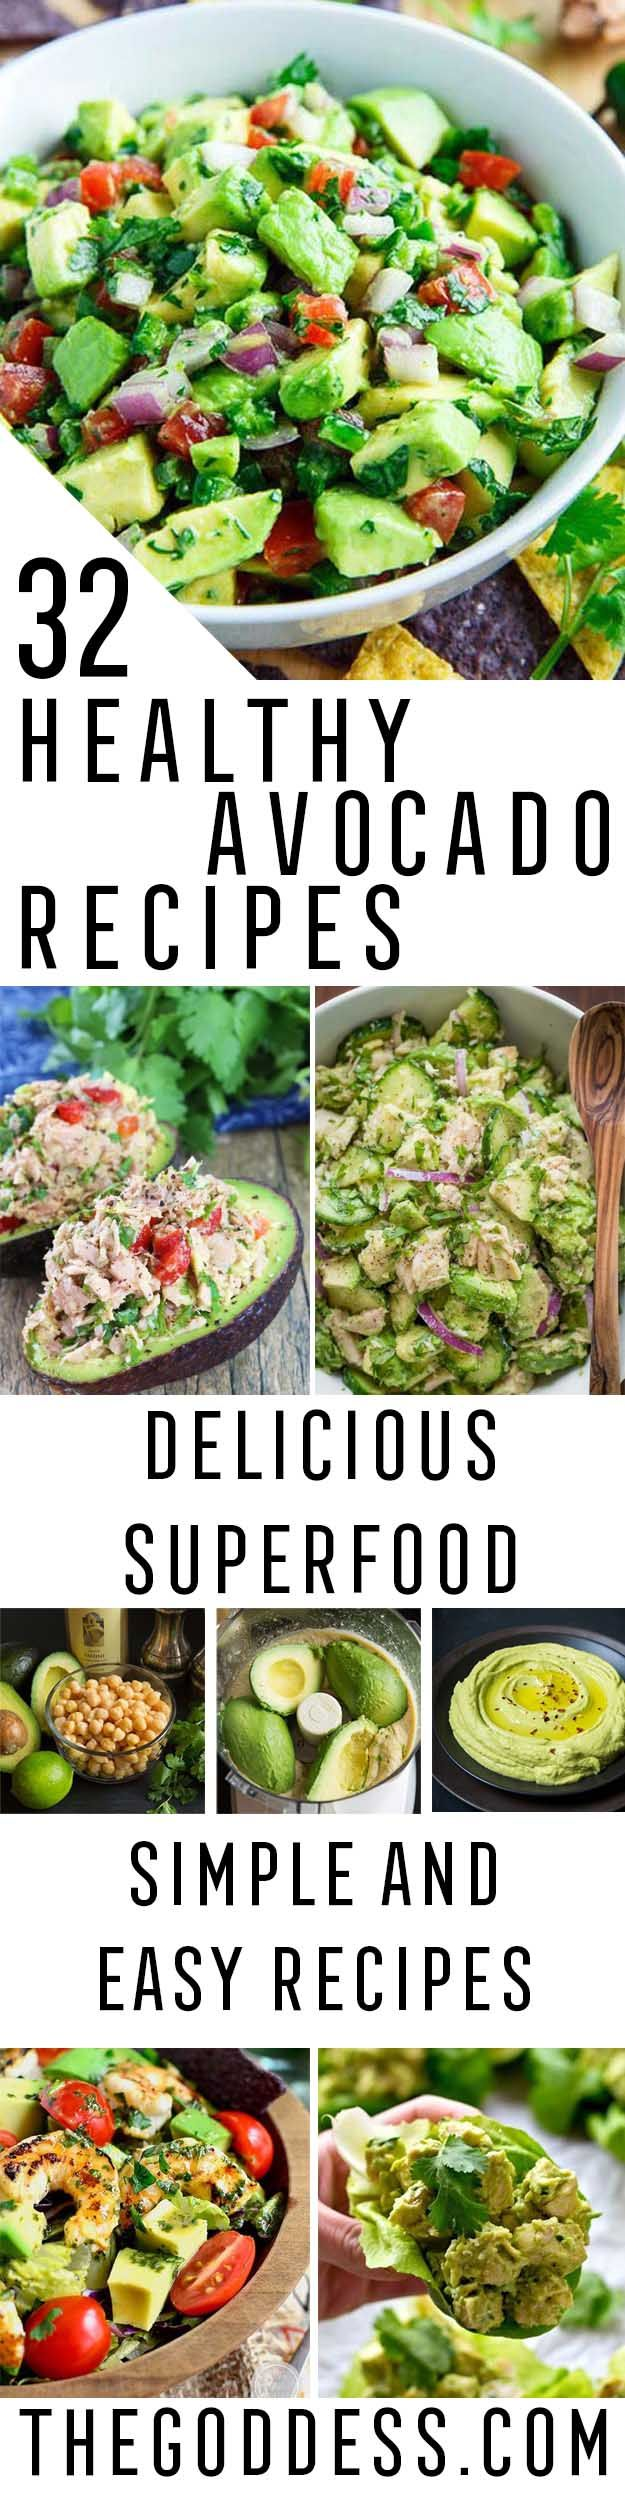 Healthy Avocado Recipes - Easy Clean Eating Recipes for Breakfast, Lunches, Dinner and even Desserts - Low Carb Vegetarian Snacks, Dip, Smothie Ideas and All Sorts of Diets - Get Your Fitness in Order with these awesome Paleo Detox Plans - thegoddess.com/